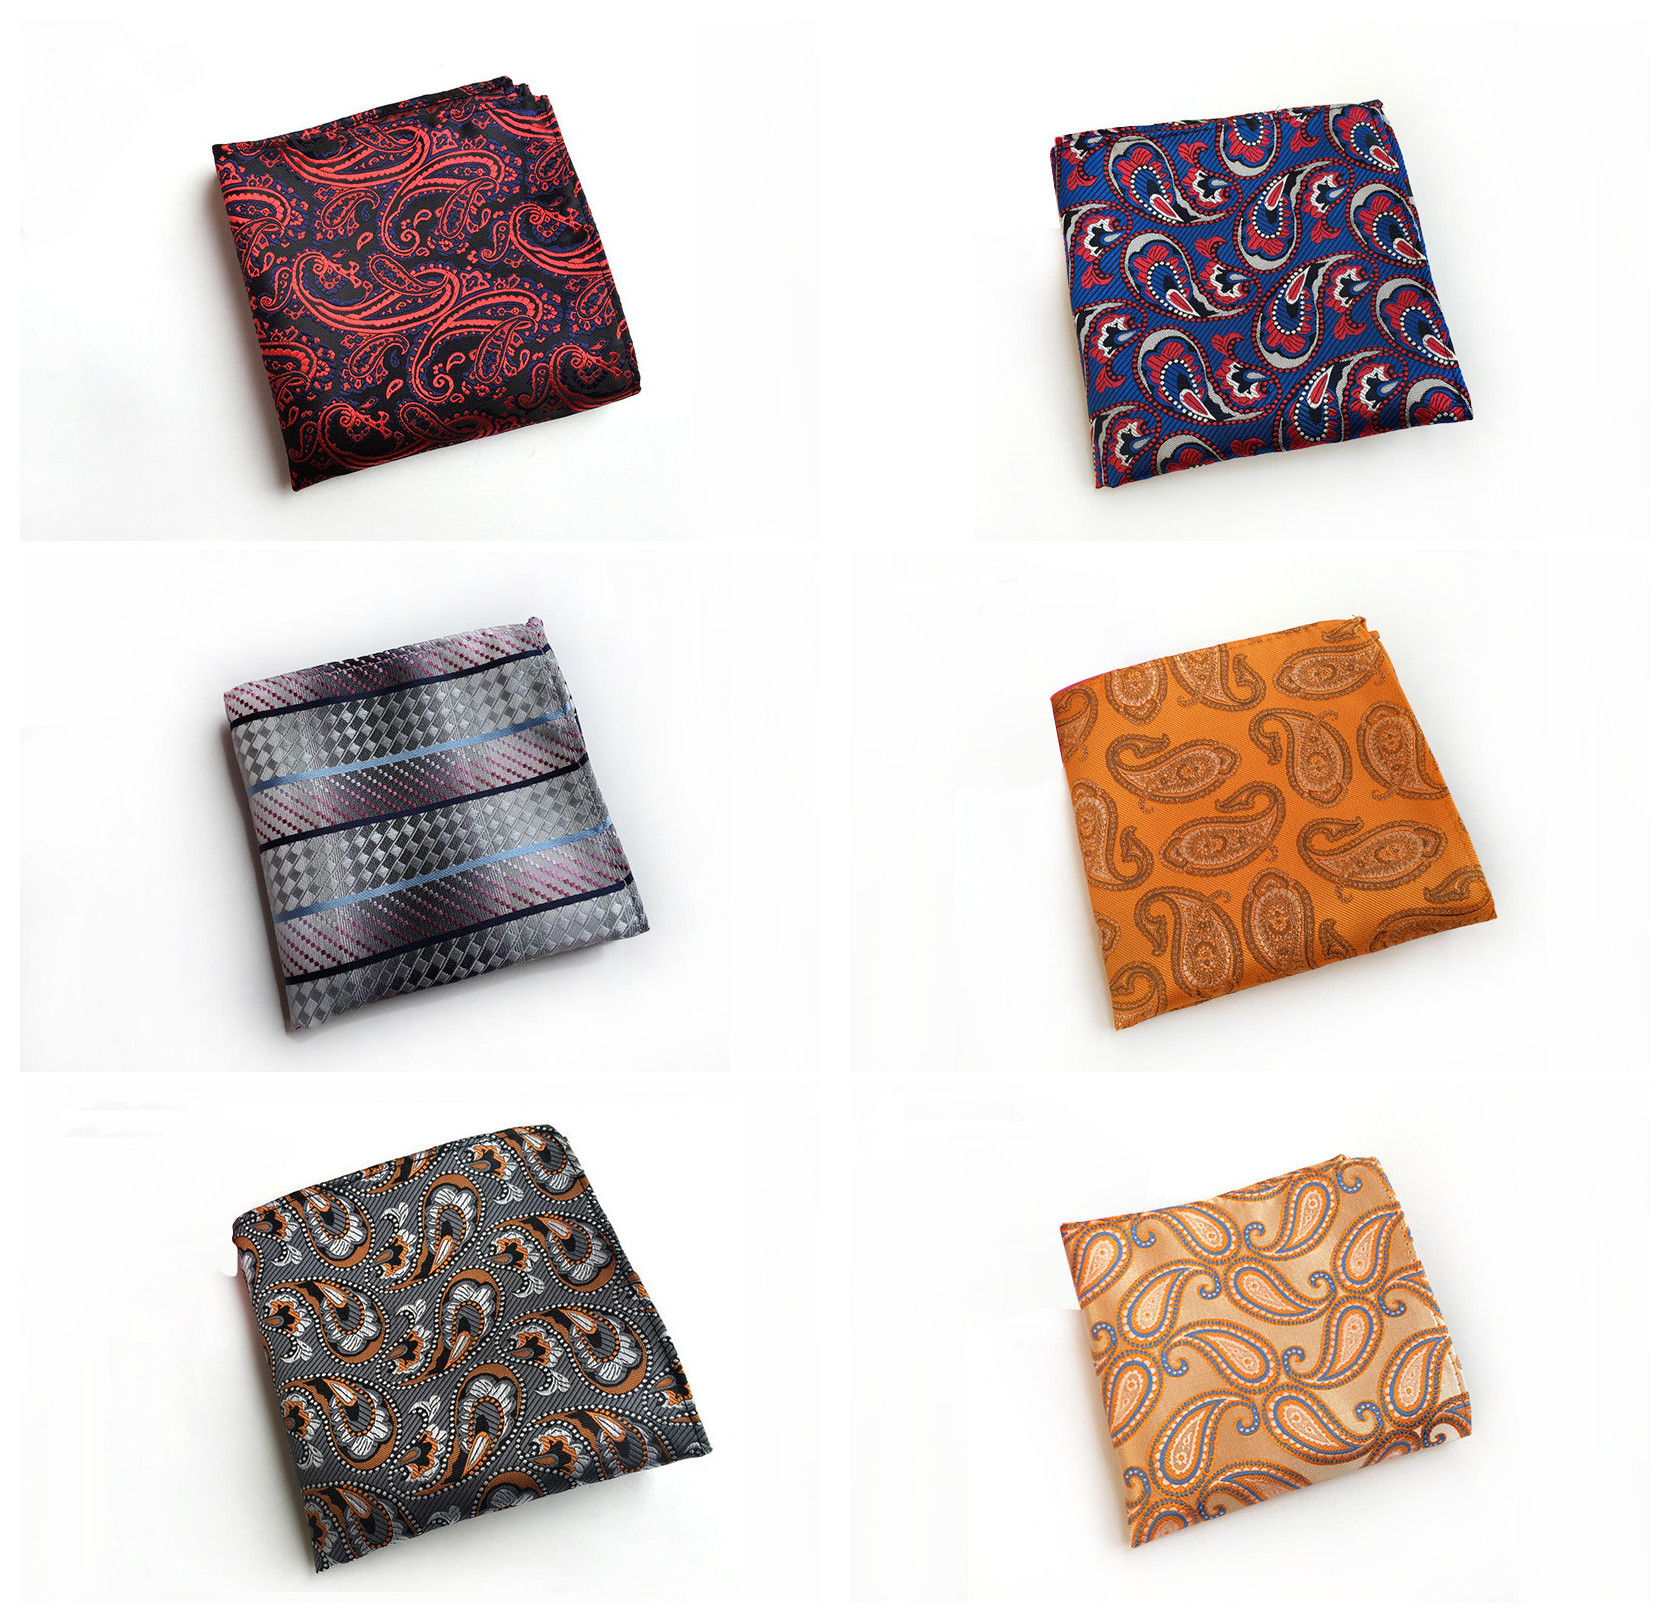 2019 Explosion Polyester Material Accessories Pocket Towel Quality Business Men's Simple Personality Handkerchief Pocket Towel